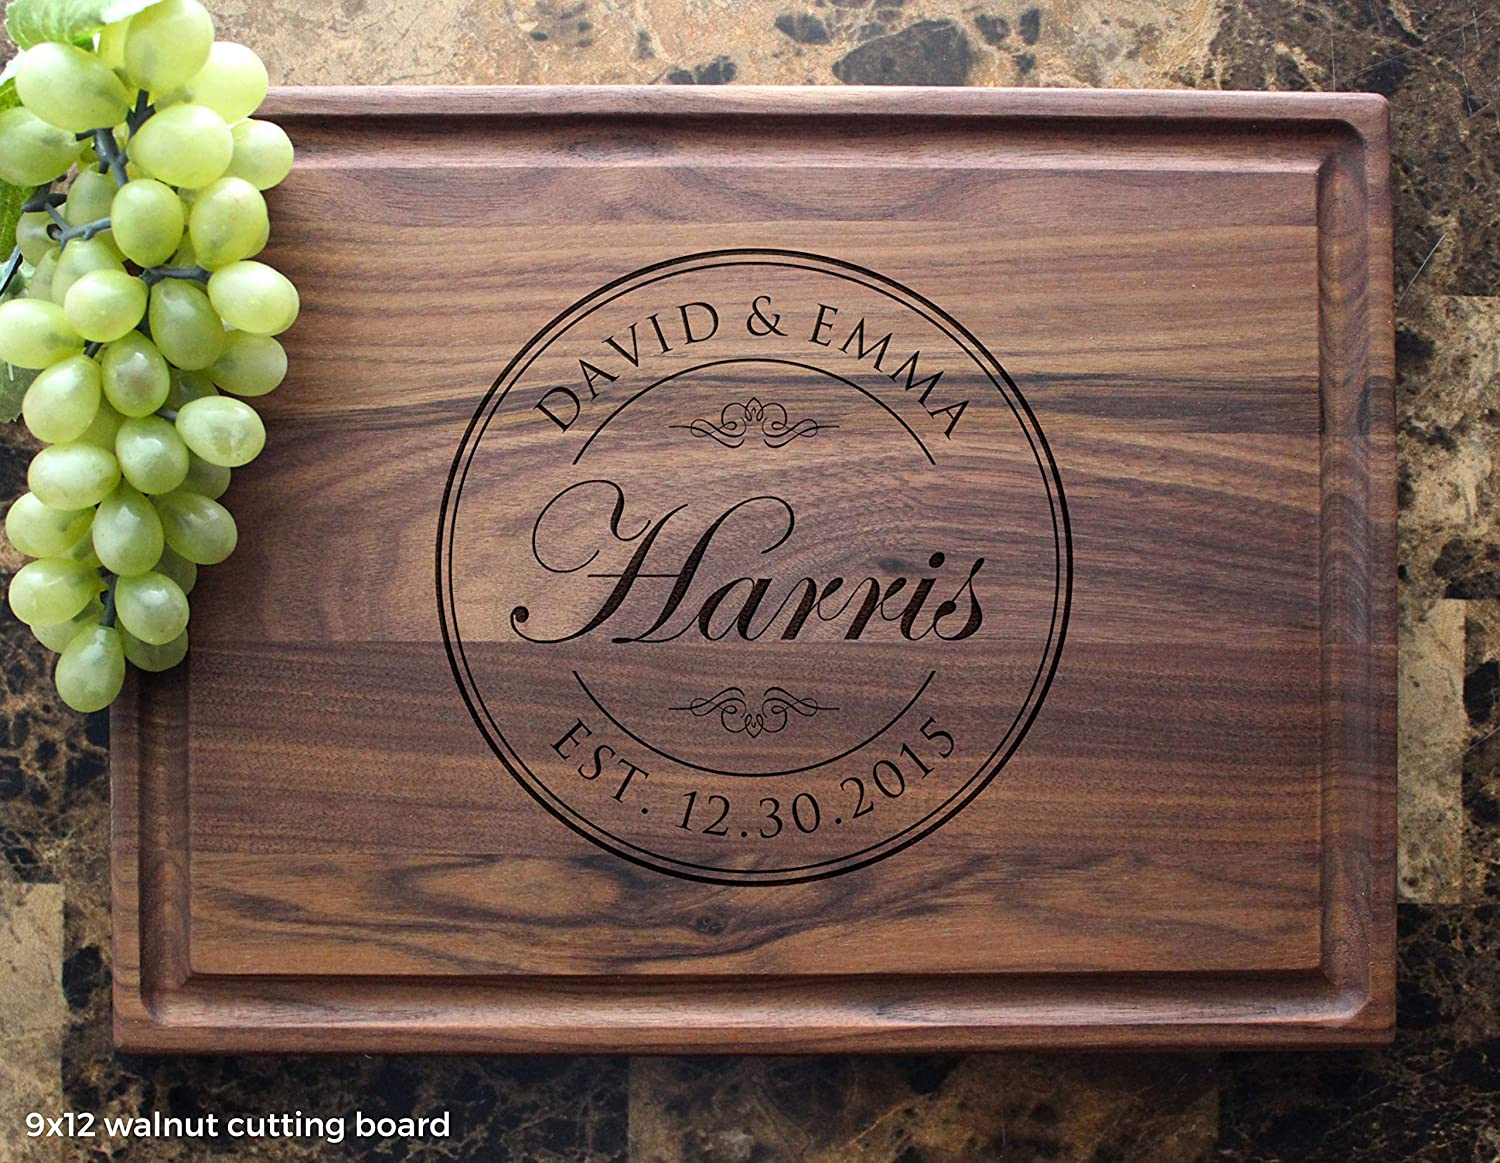 B0161P603S Personalized Cutting Board, Custom Keepsake, Engraved Serving Cheese Plate, Wedding, Anniversary, Engagement, Housewarming, Birthday, Corporate, Closing Gift #001 911y1dbVo0L